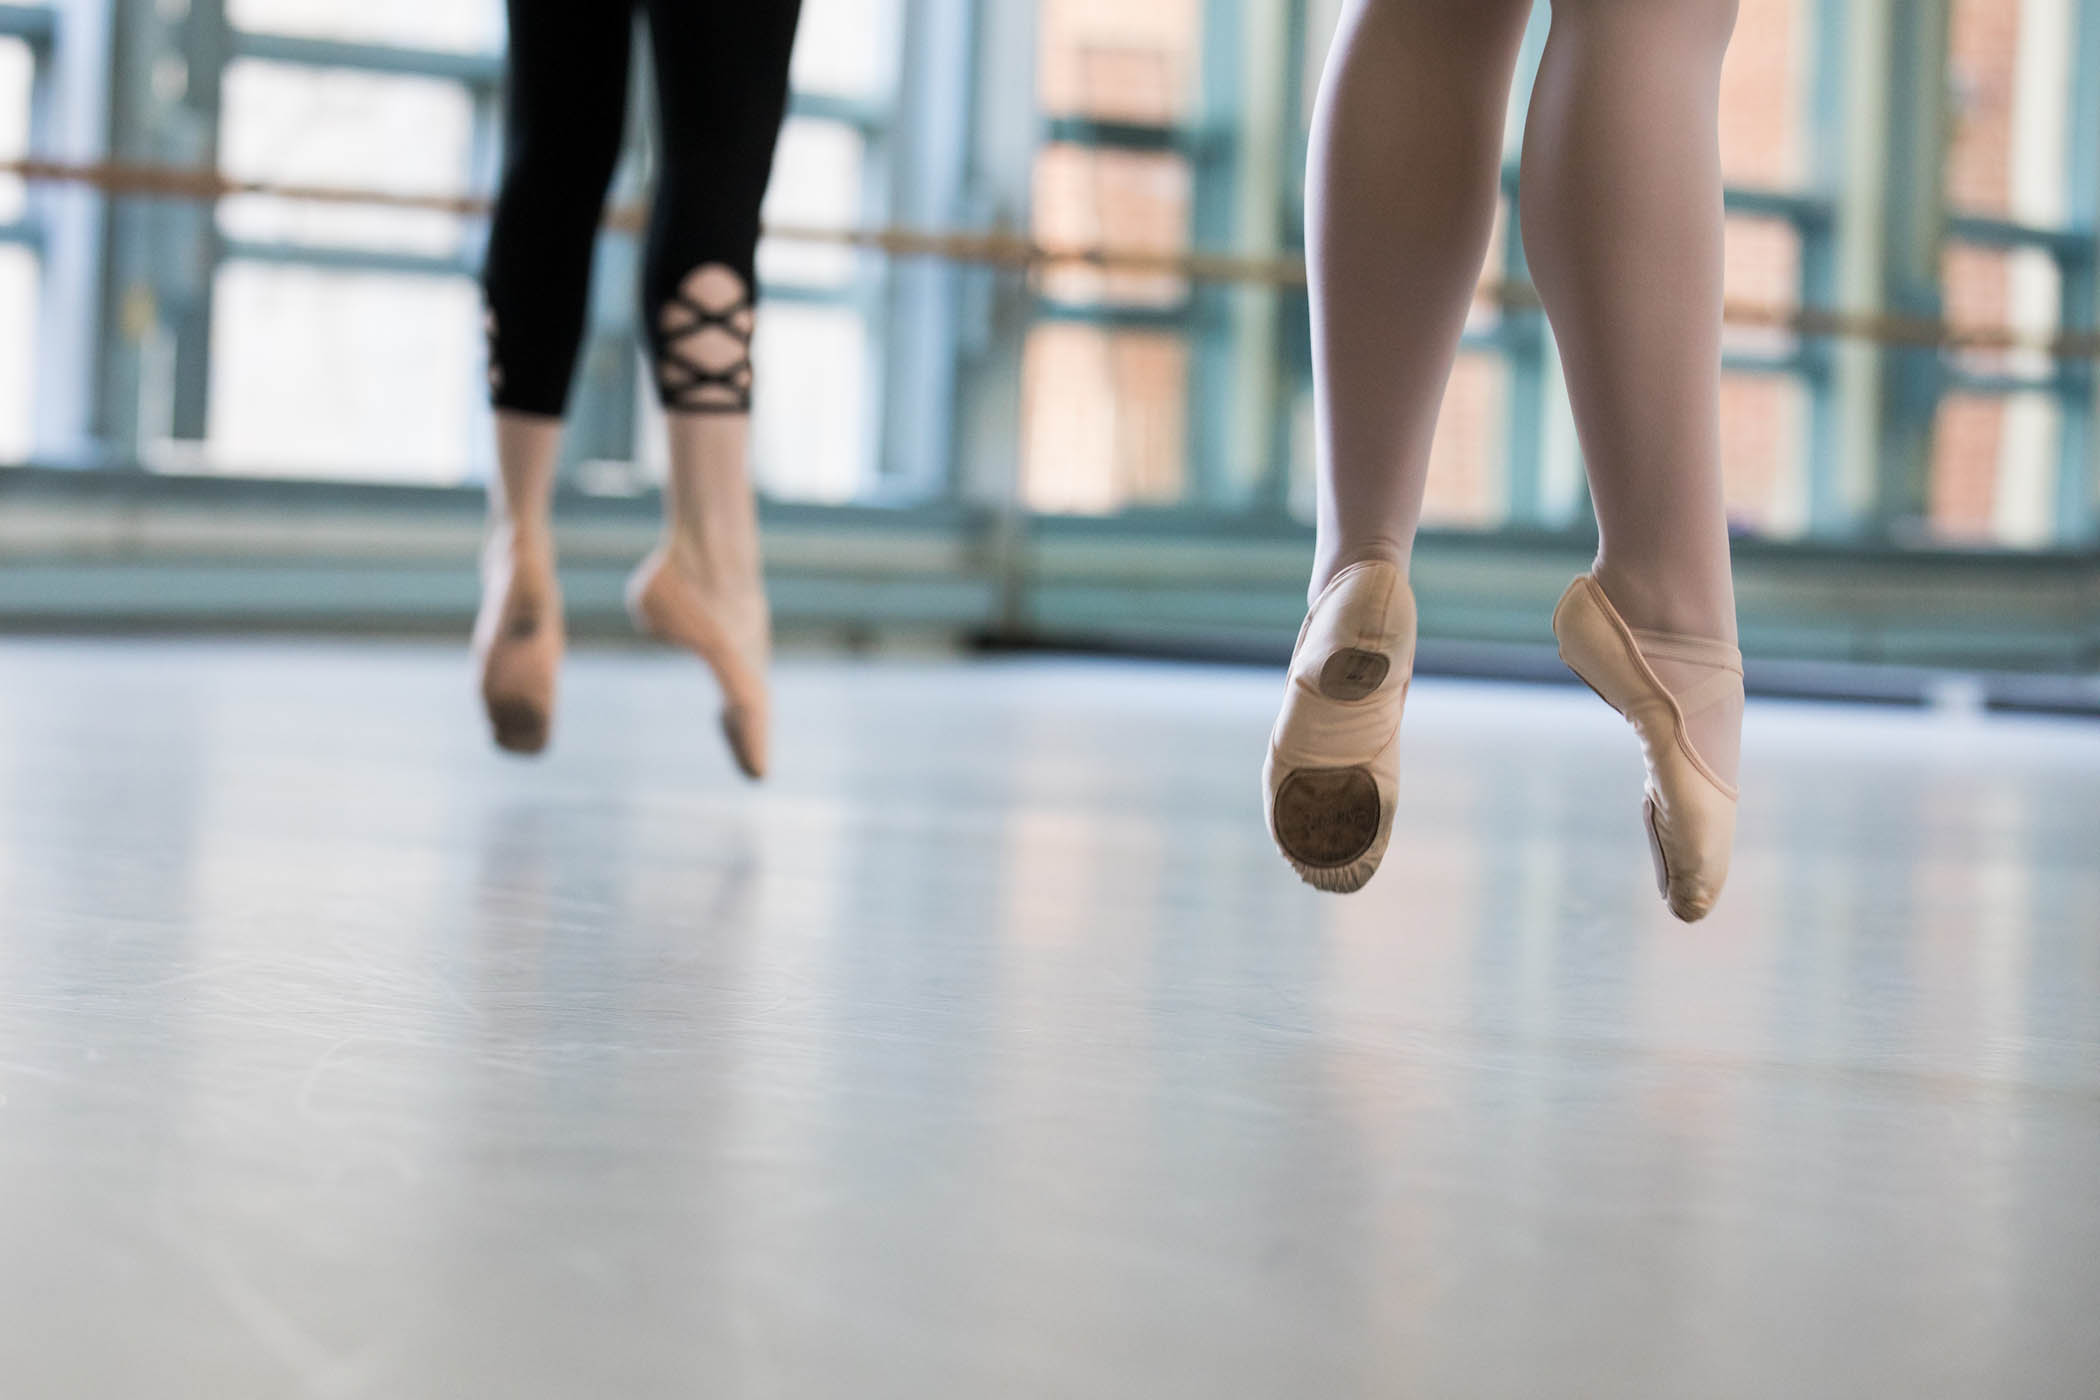 Feet of two dancers in the air